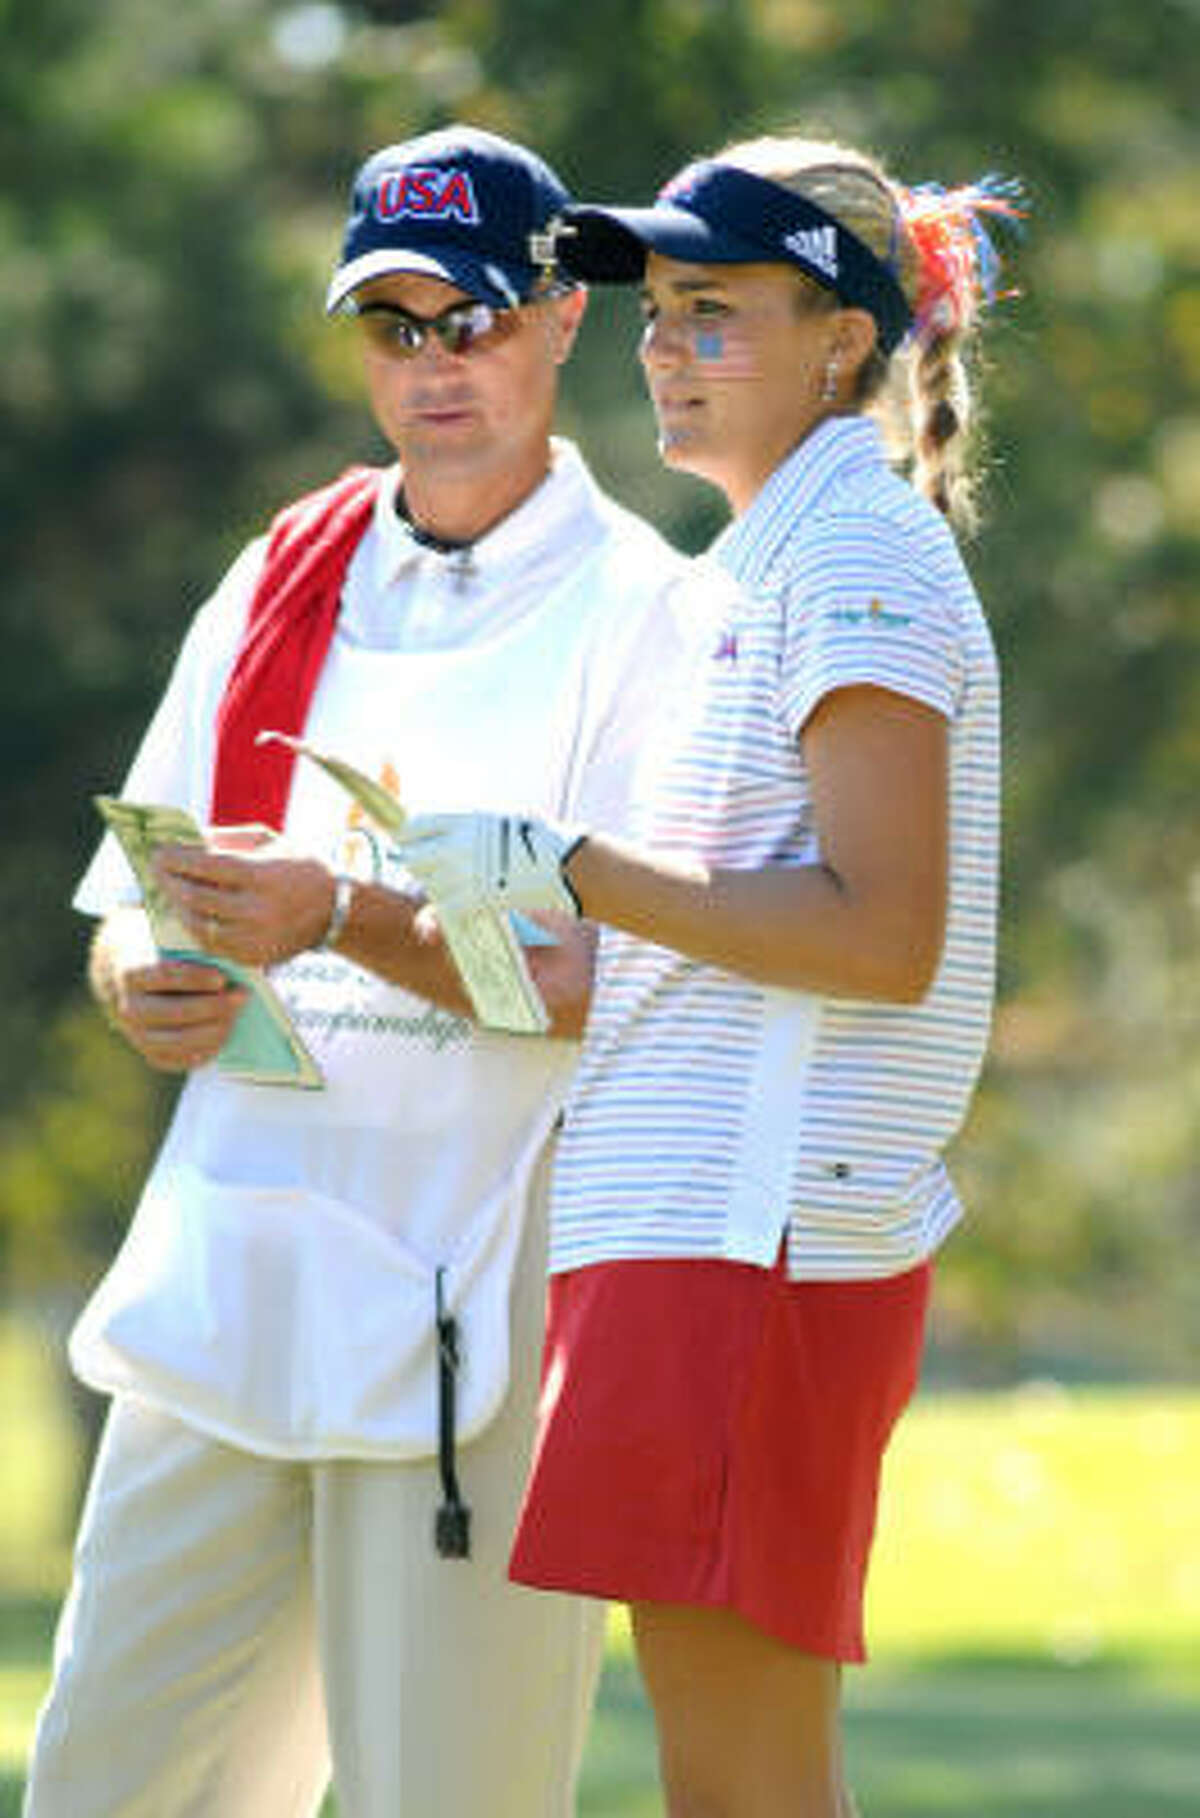 Alexis Thompson, 14, right, of Coral Springs, Fla., with her caddy, Randy Lance, of The Woodlands, checks the yardage on the par-4 No. 5 hole.